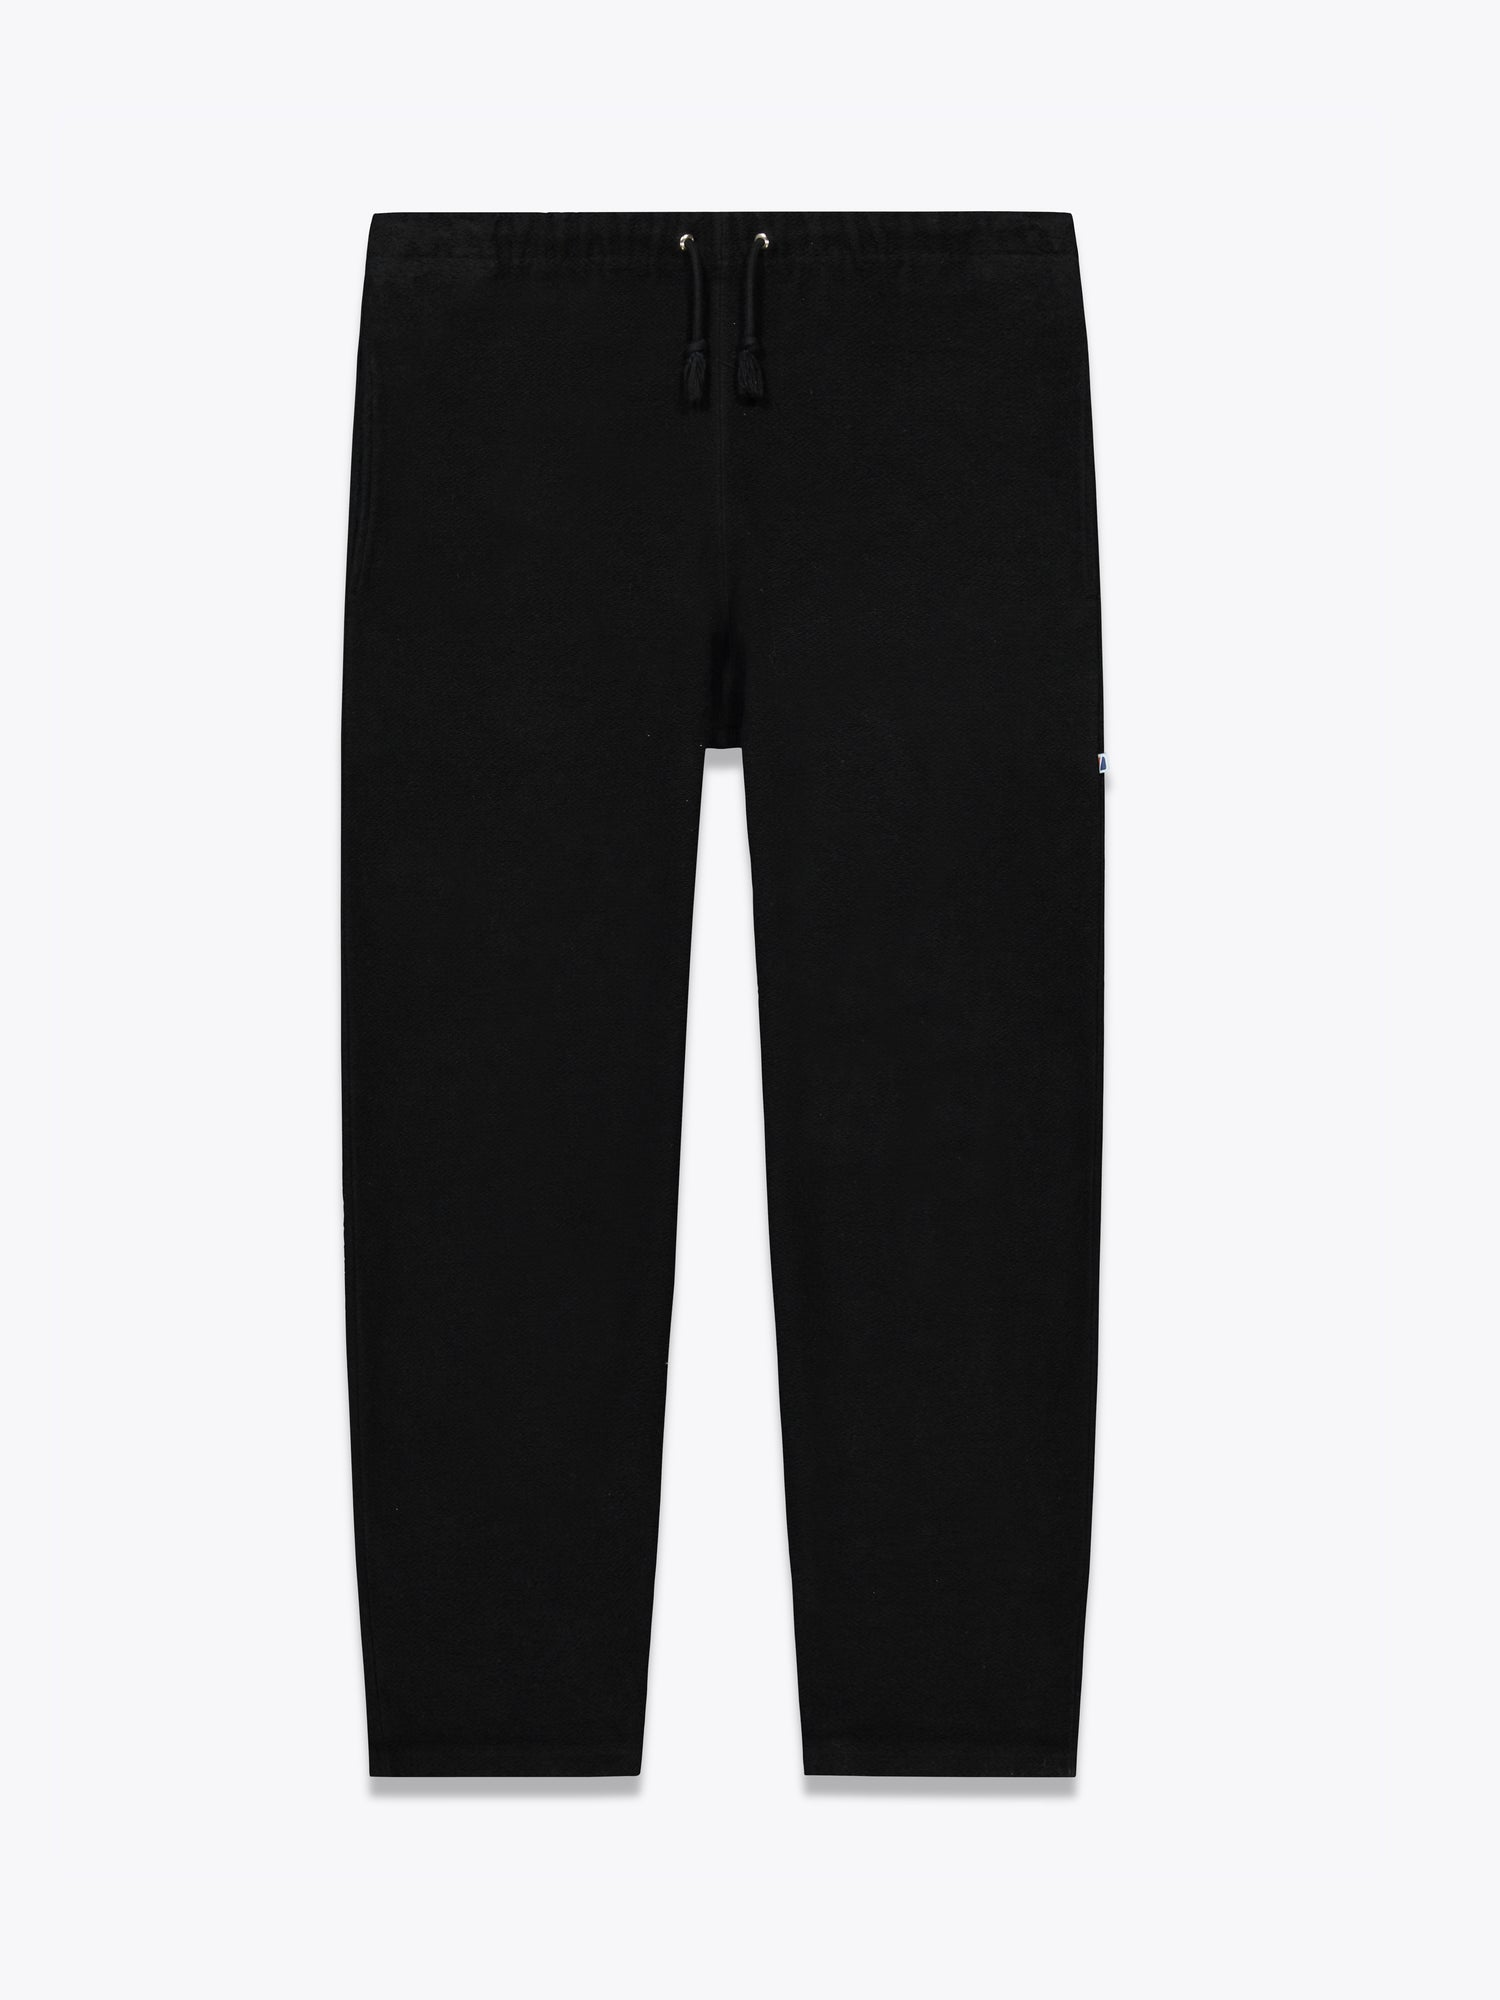 Camp Fit Sweatpants - Black (Pre-order)